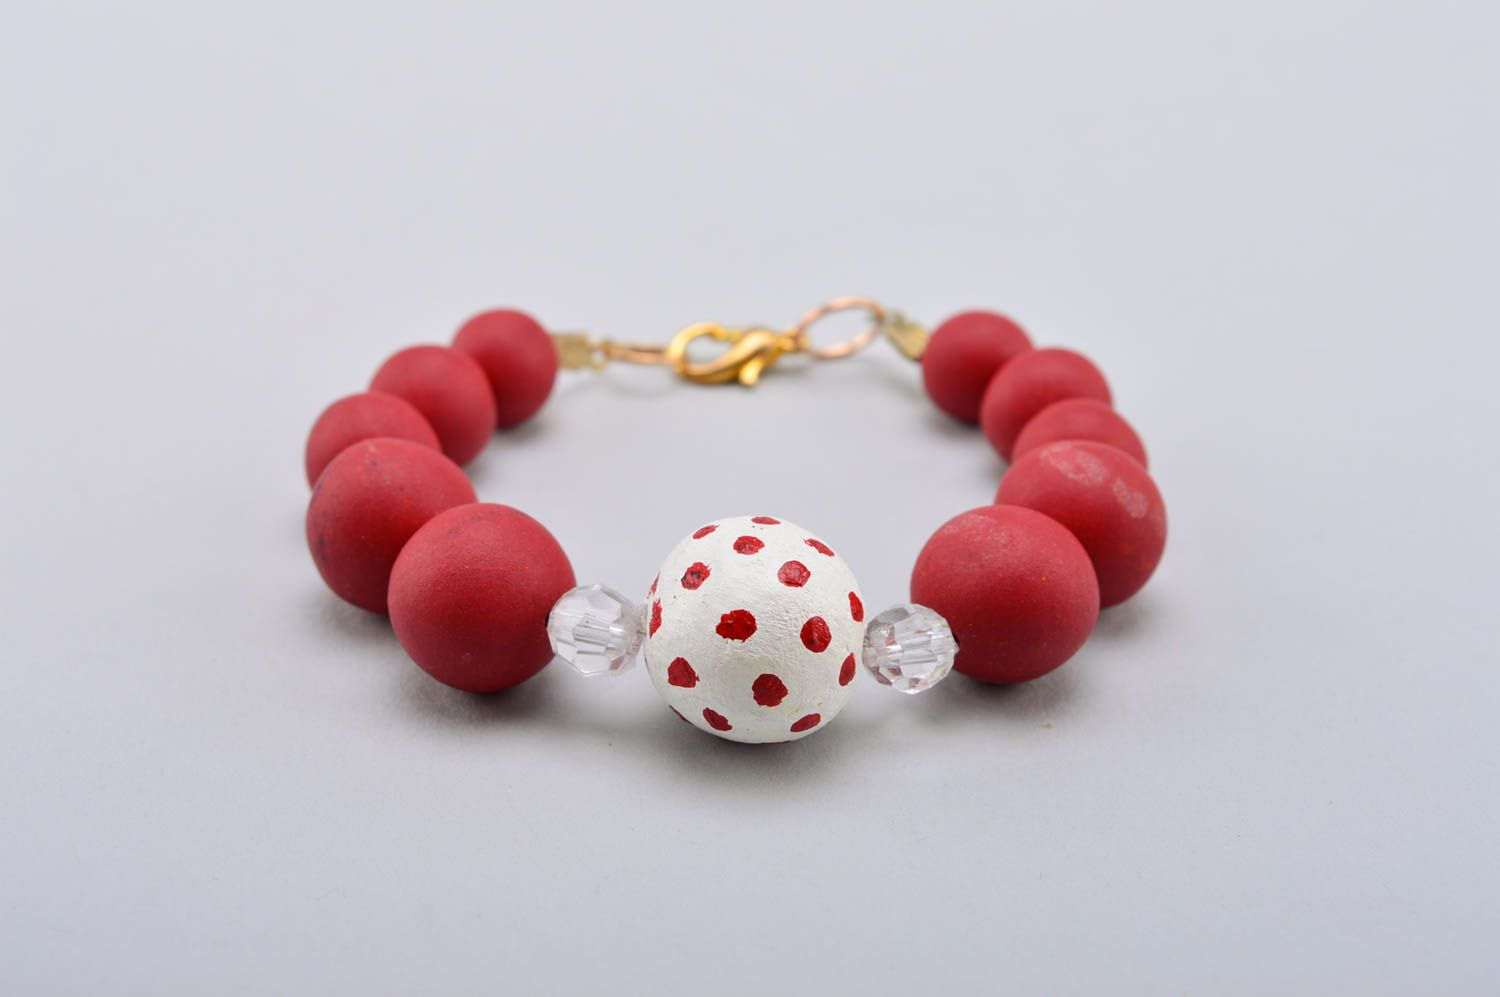 Handmade beautiful bracelet plastic red bracelet stylish wrist accessory photo 2